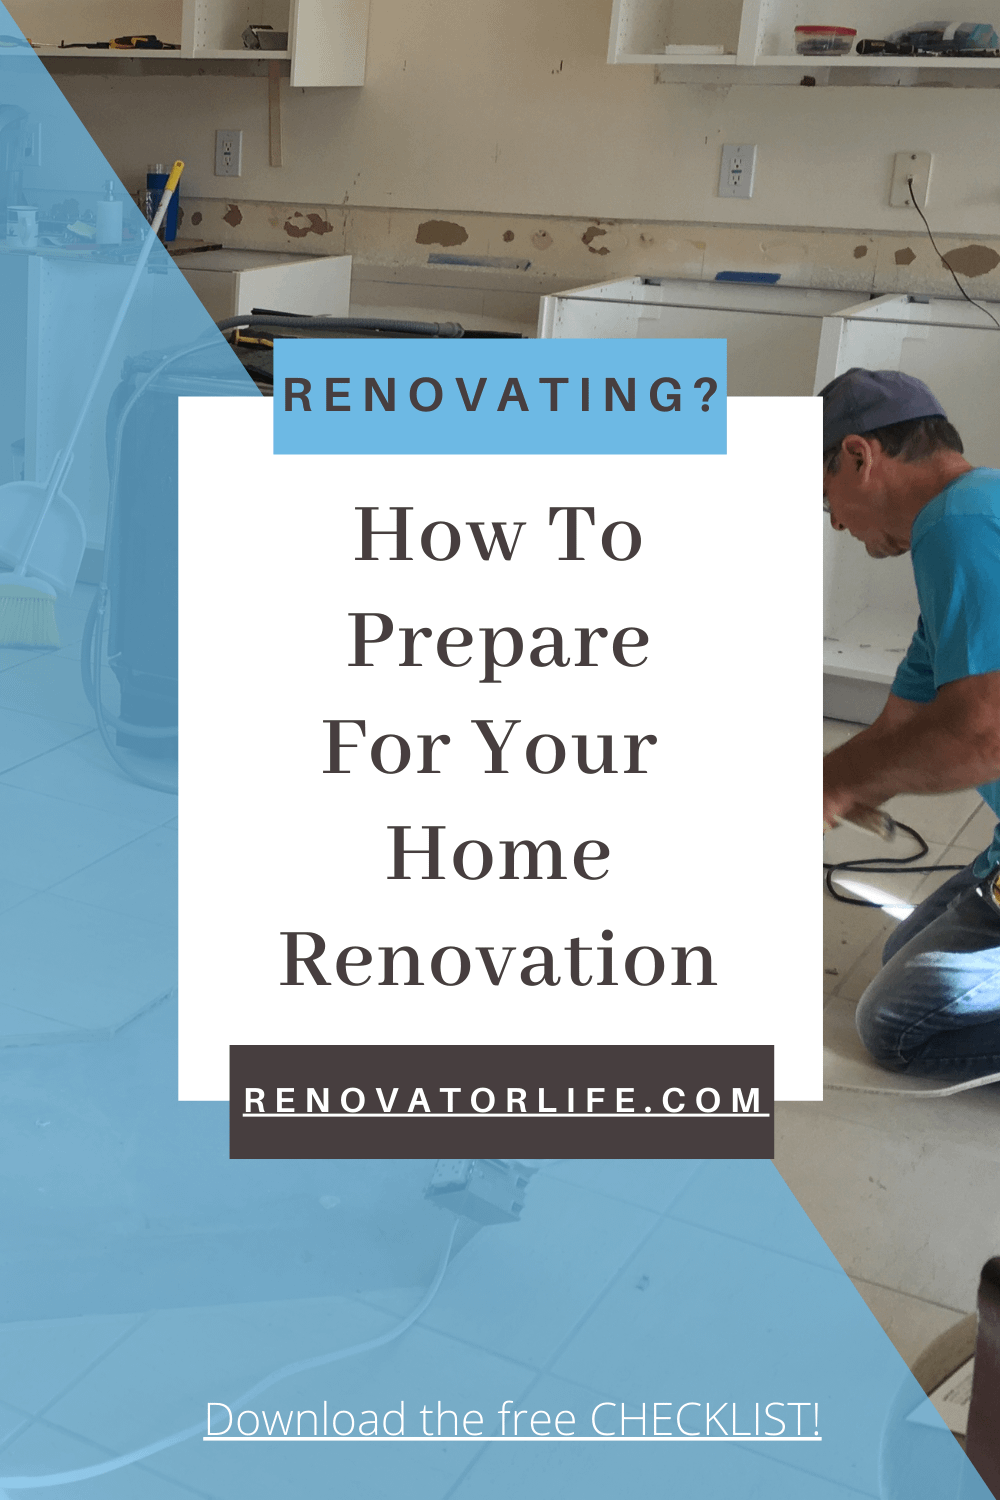 How to prepare for your home renovation